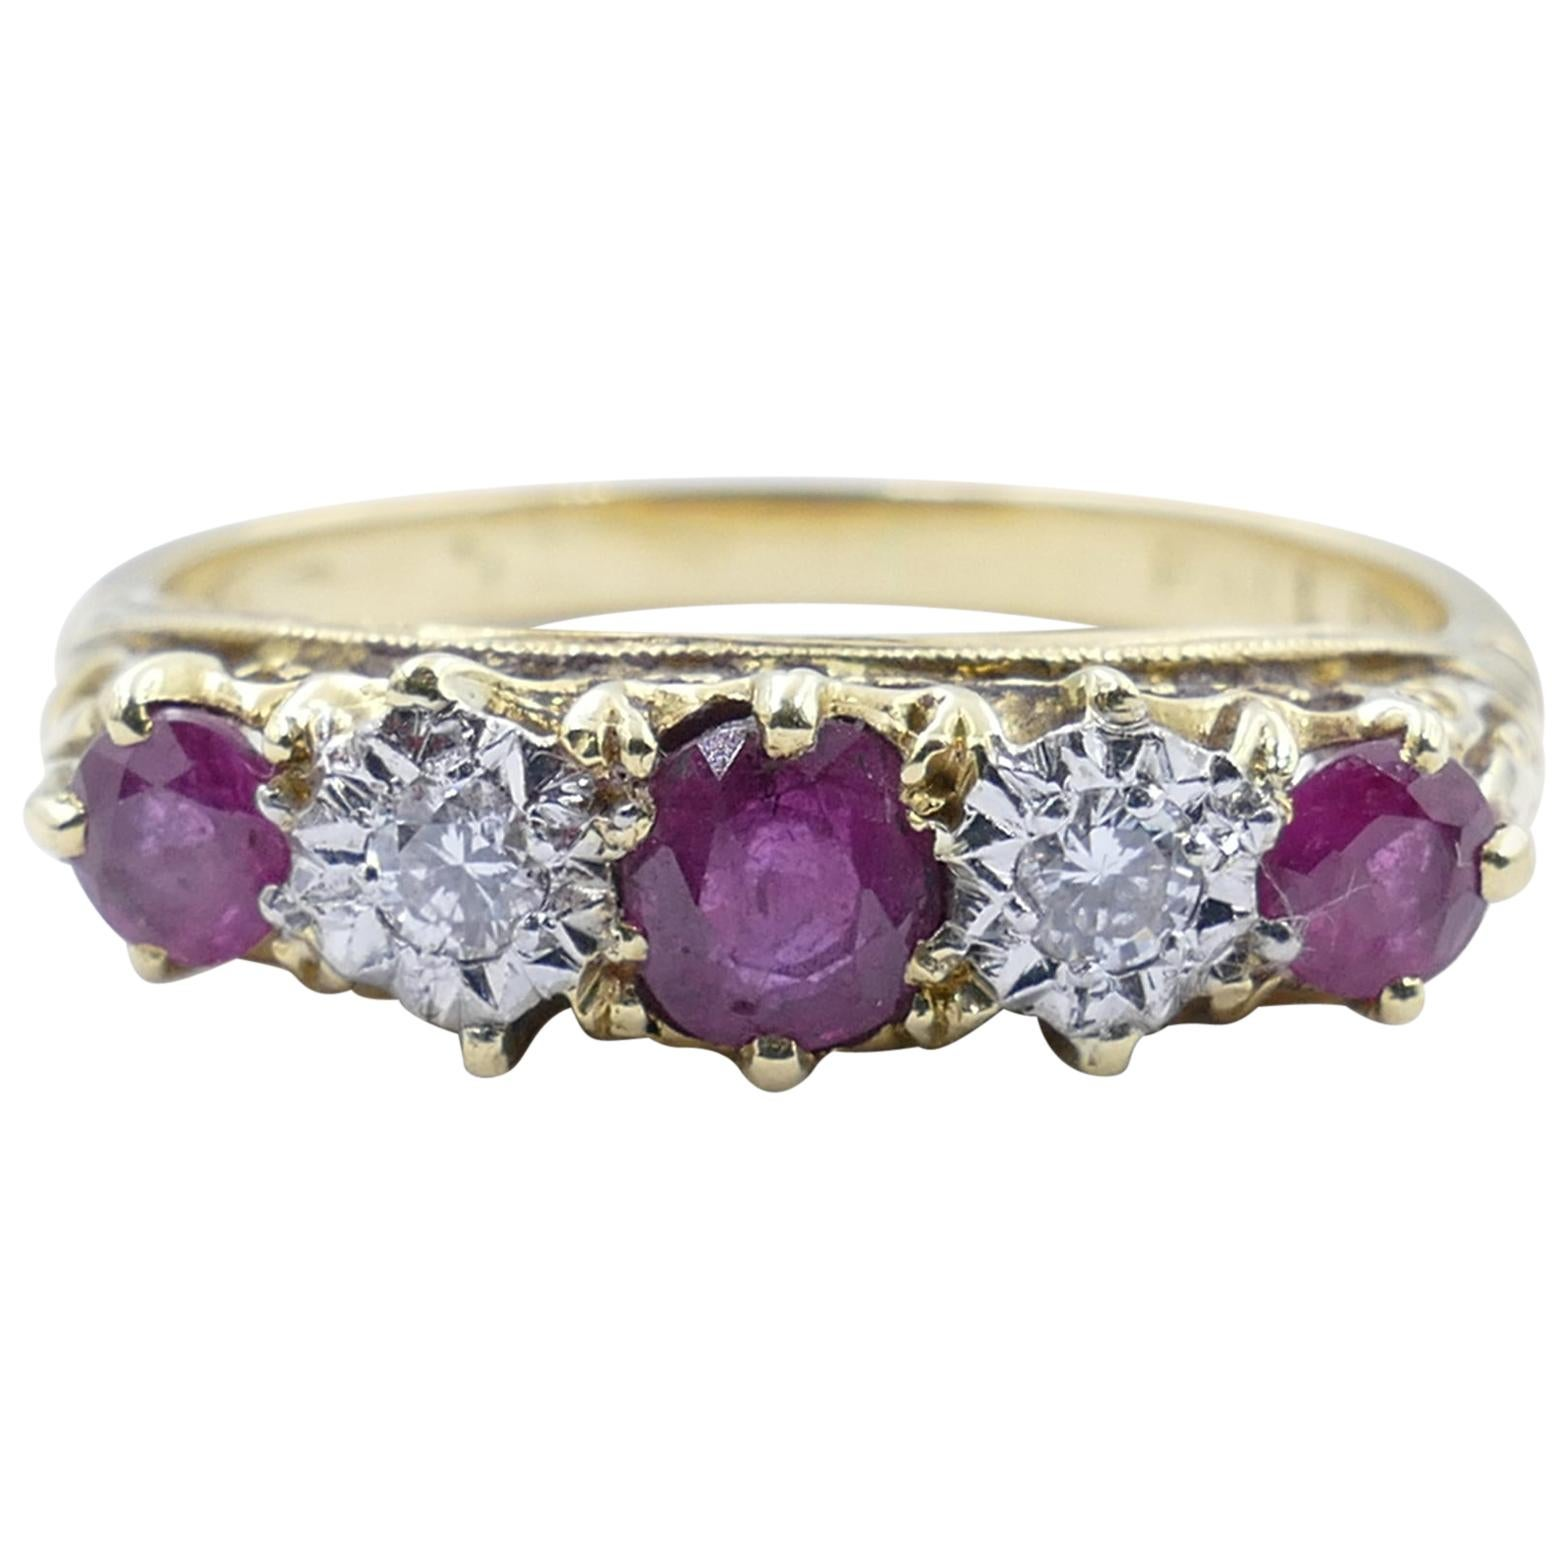 Antique Platinum and 18 Carat Yellow Gold 3 Ruby 2 Diamond Band Eternity Ring